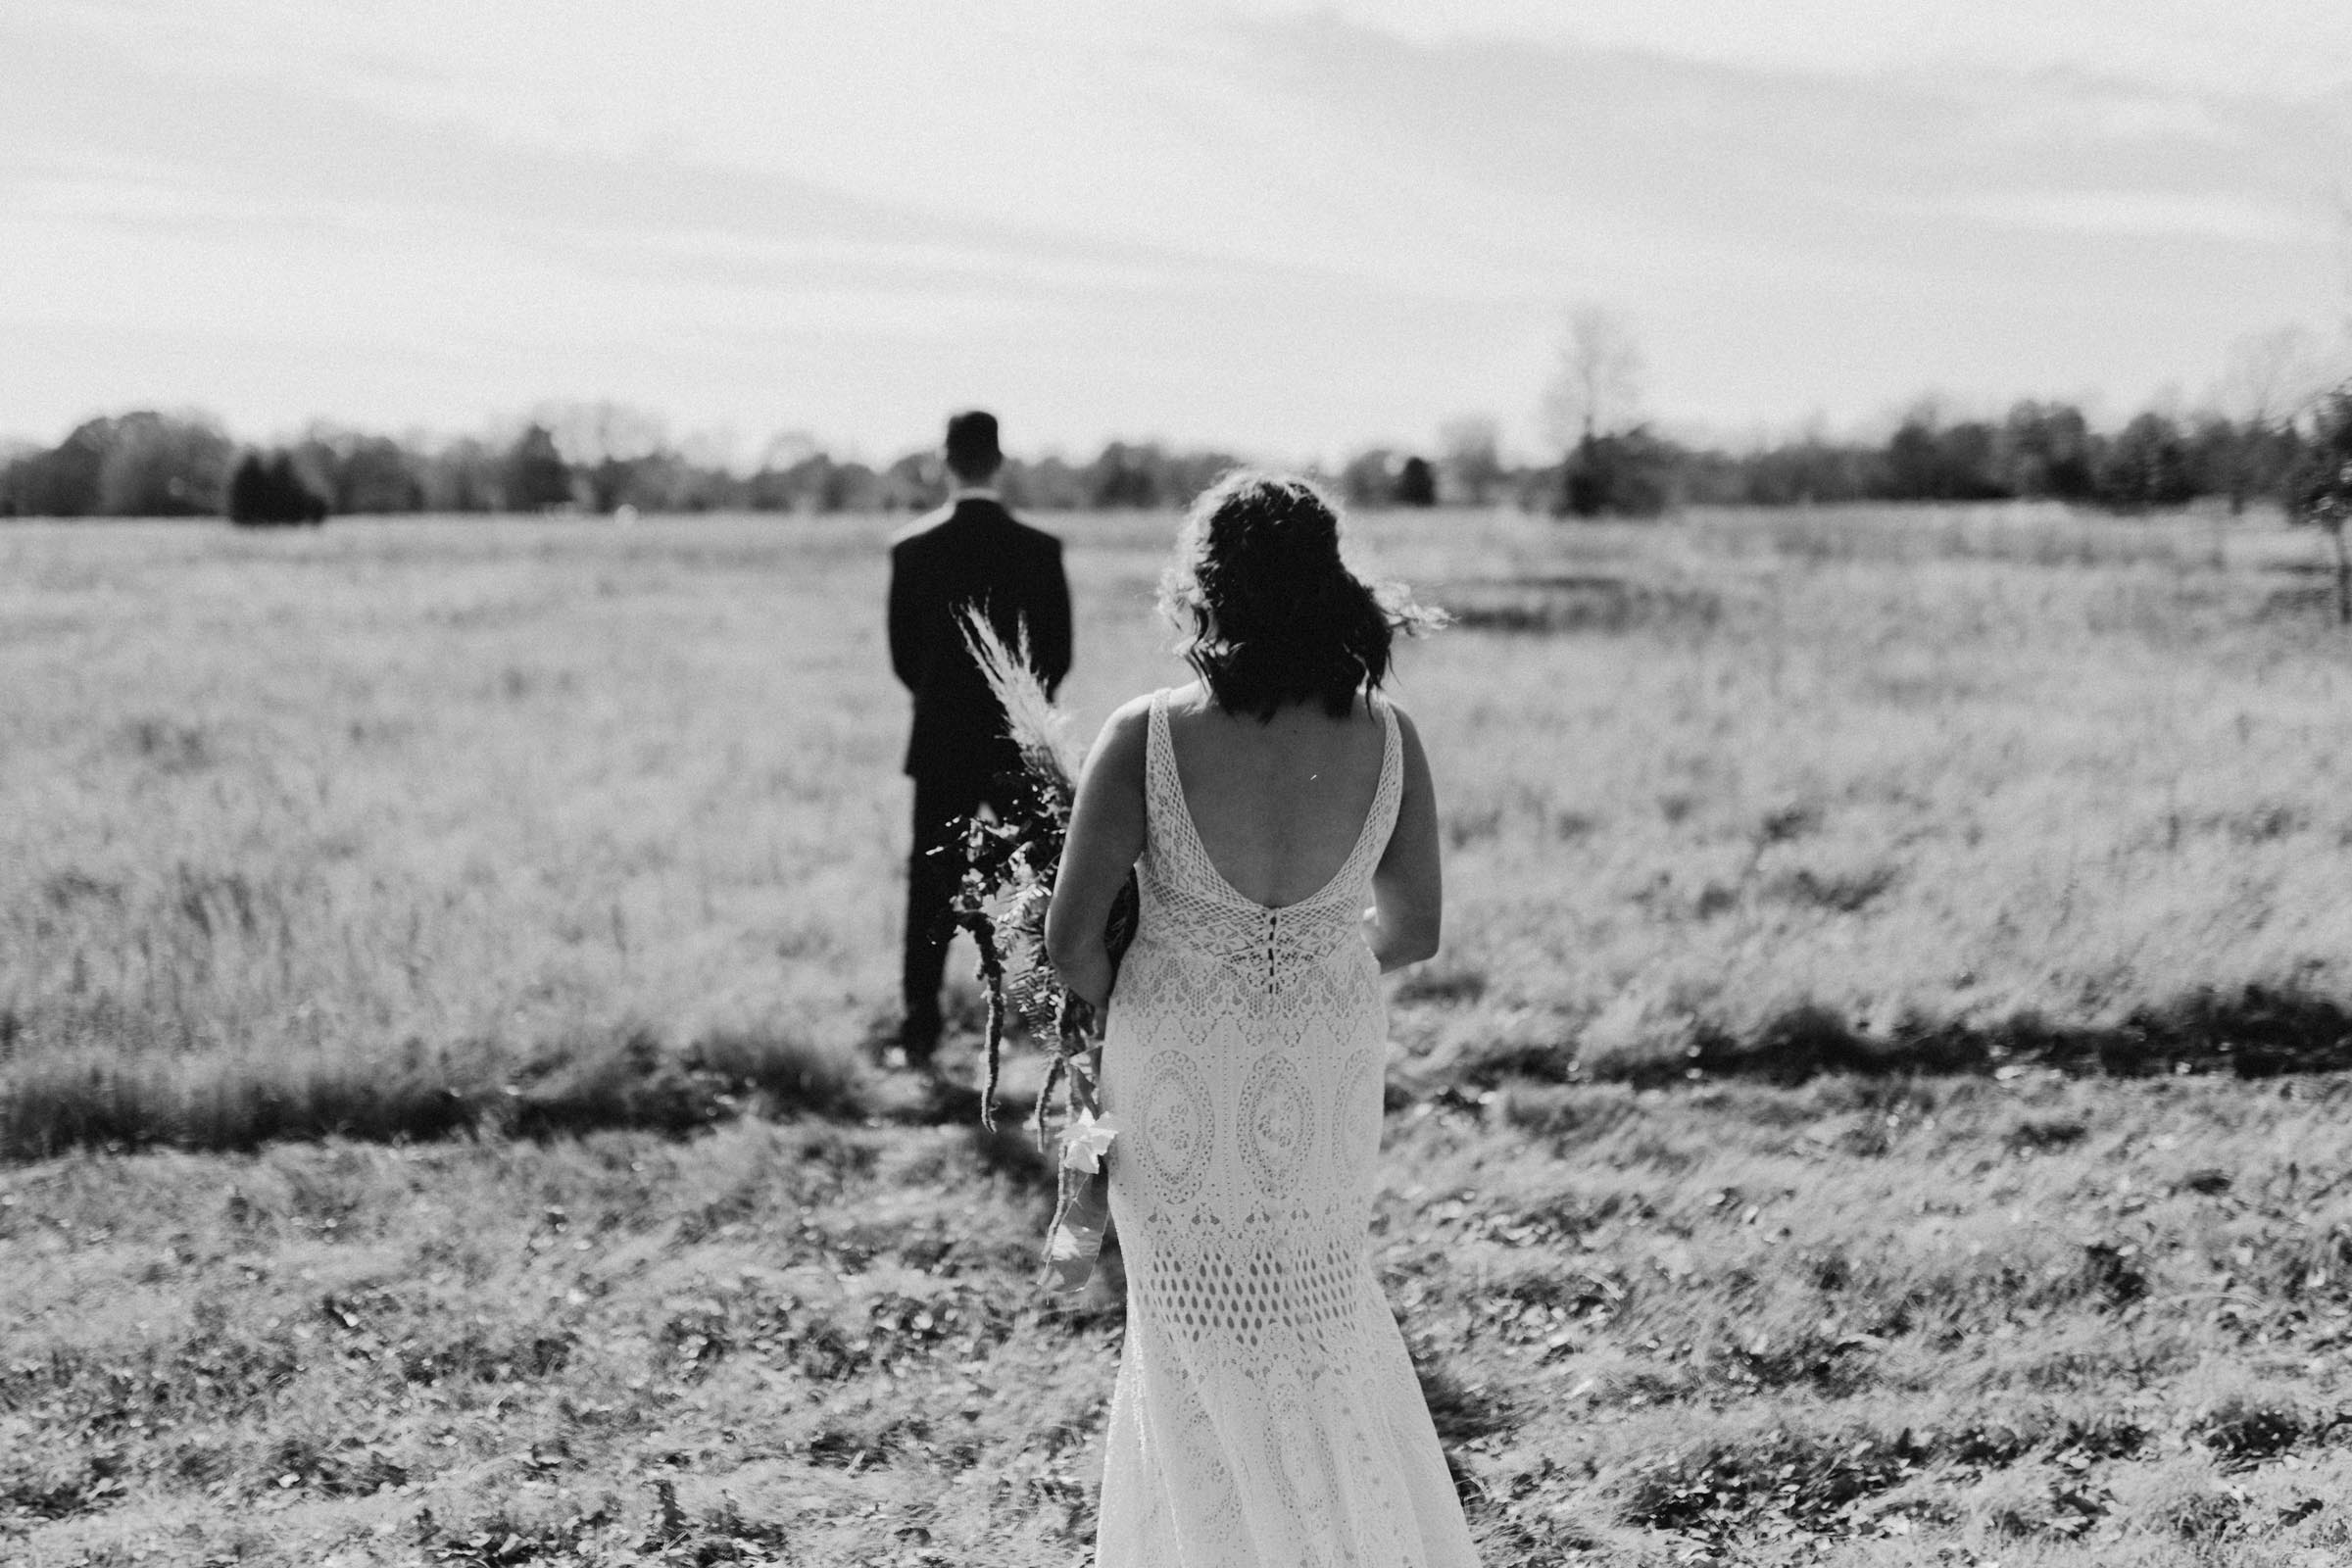 Black and white image that photographer took of a bride and groom sharing their first look on their wedding day